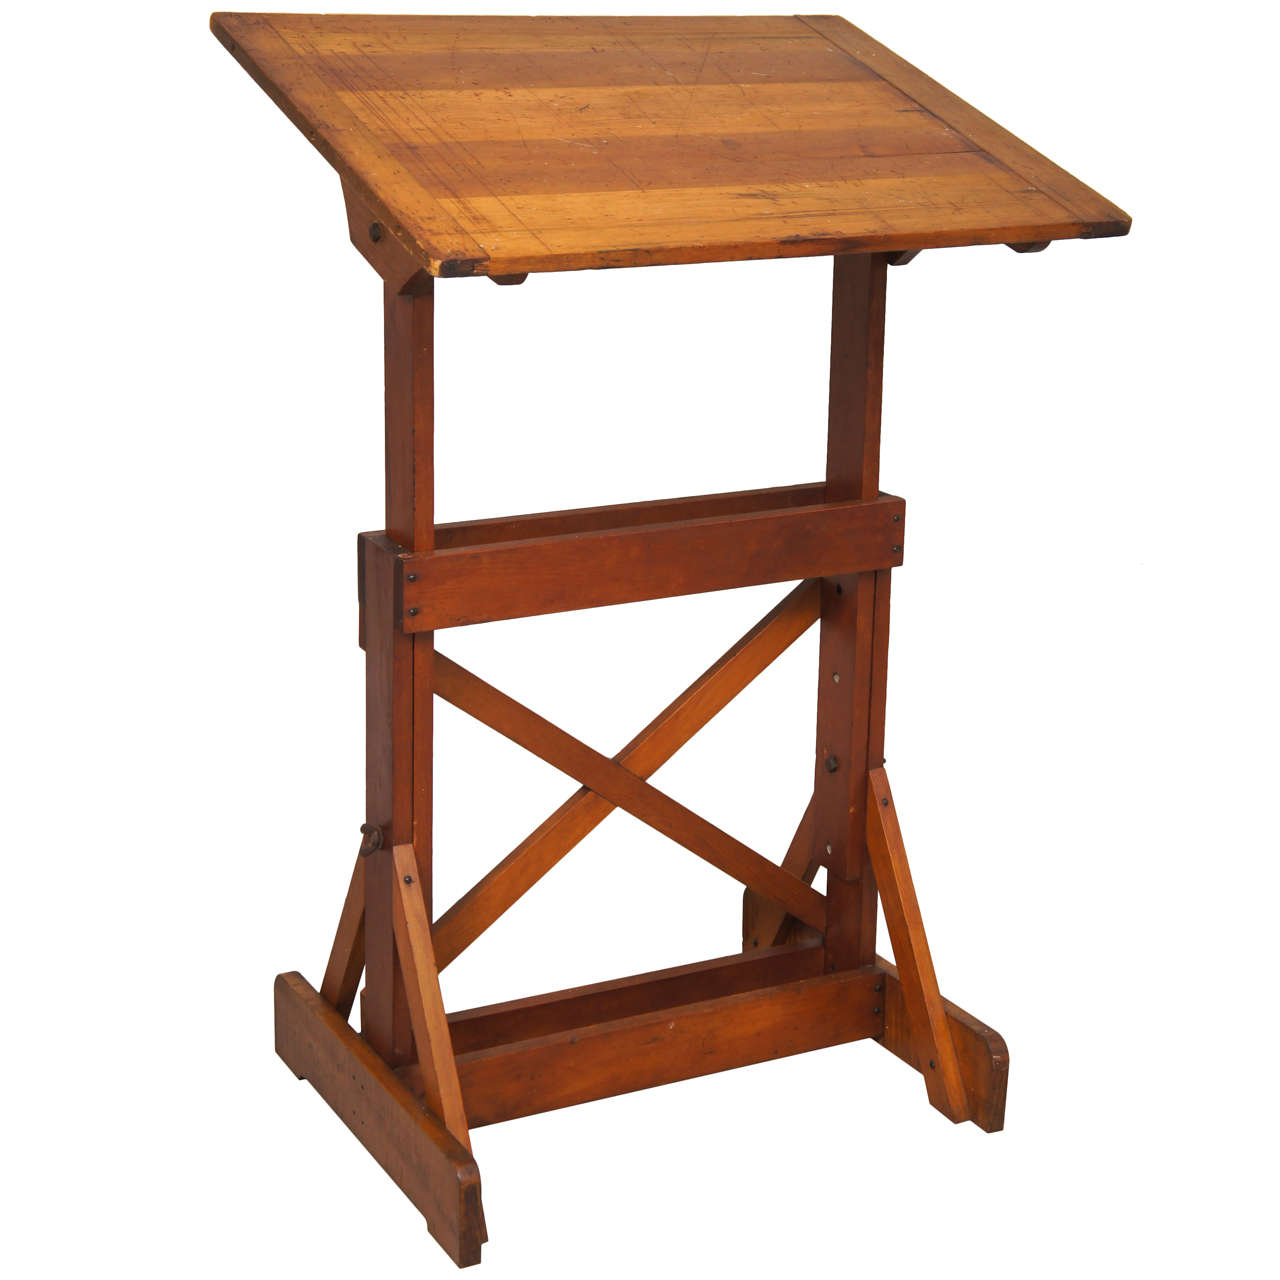 1940s Industrial Wood Drafting Table At 1stdibs